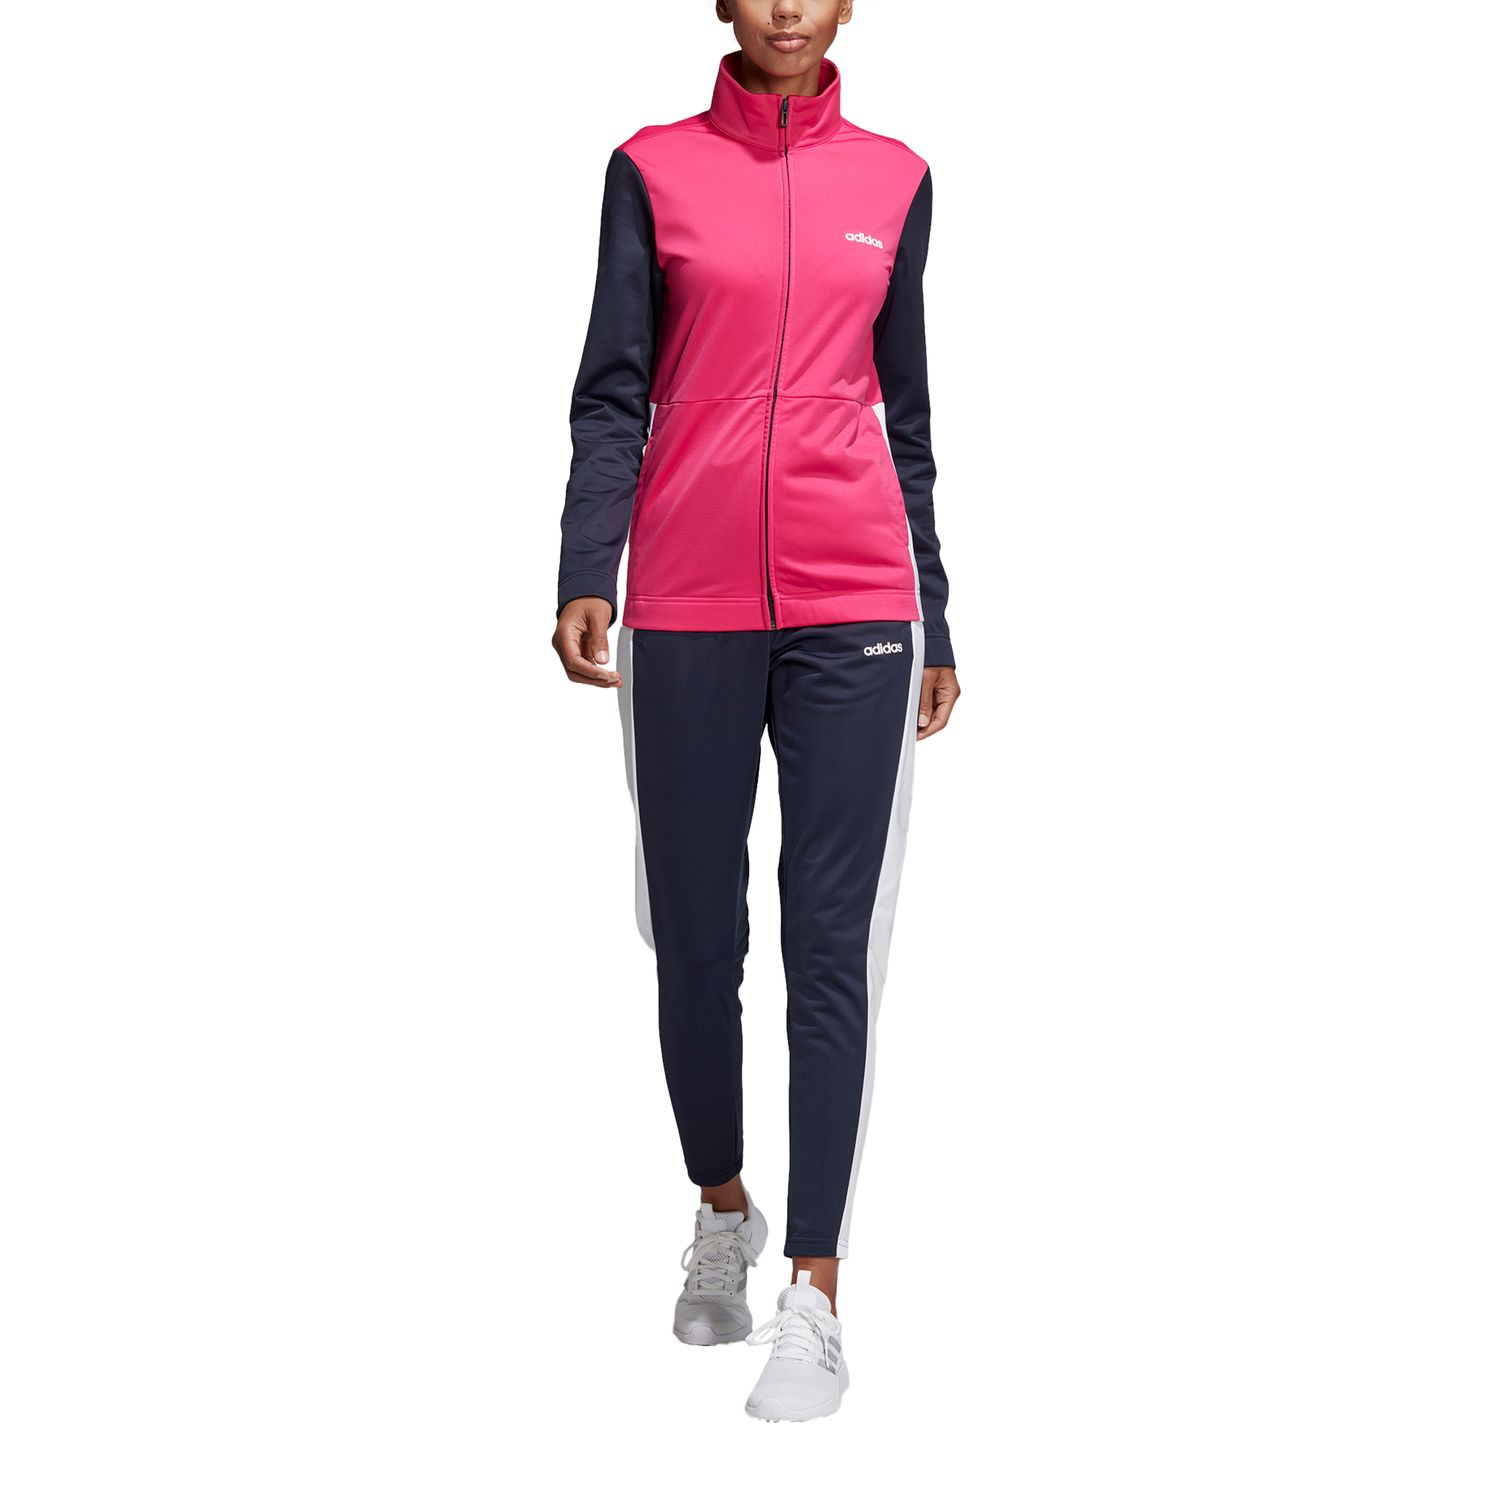 adidas Plain Tricot Damen Trainingsanzug